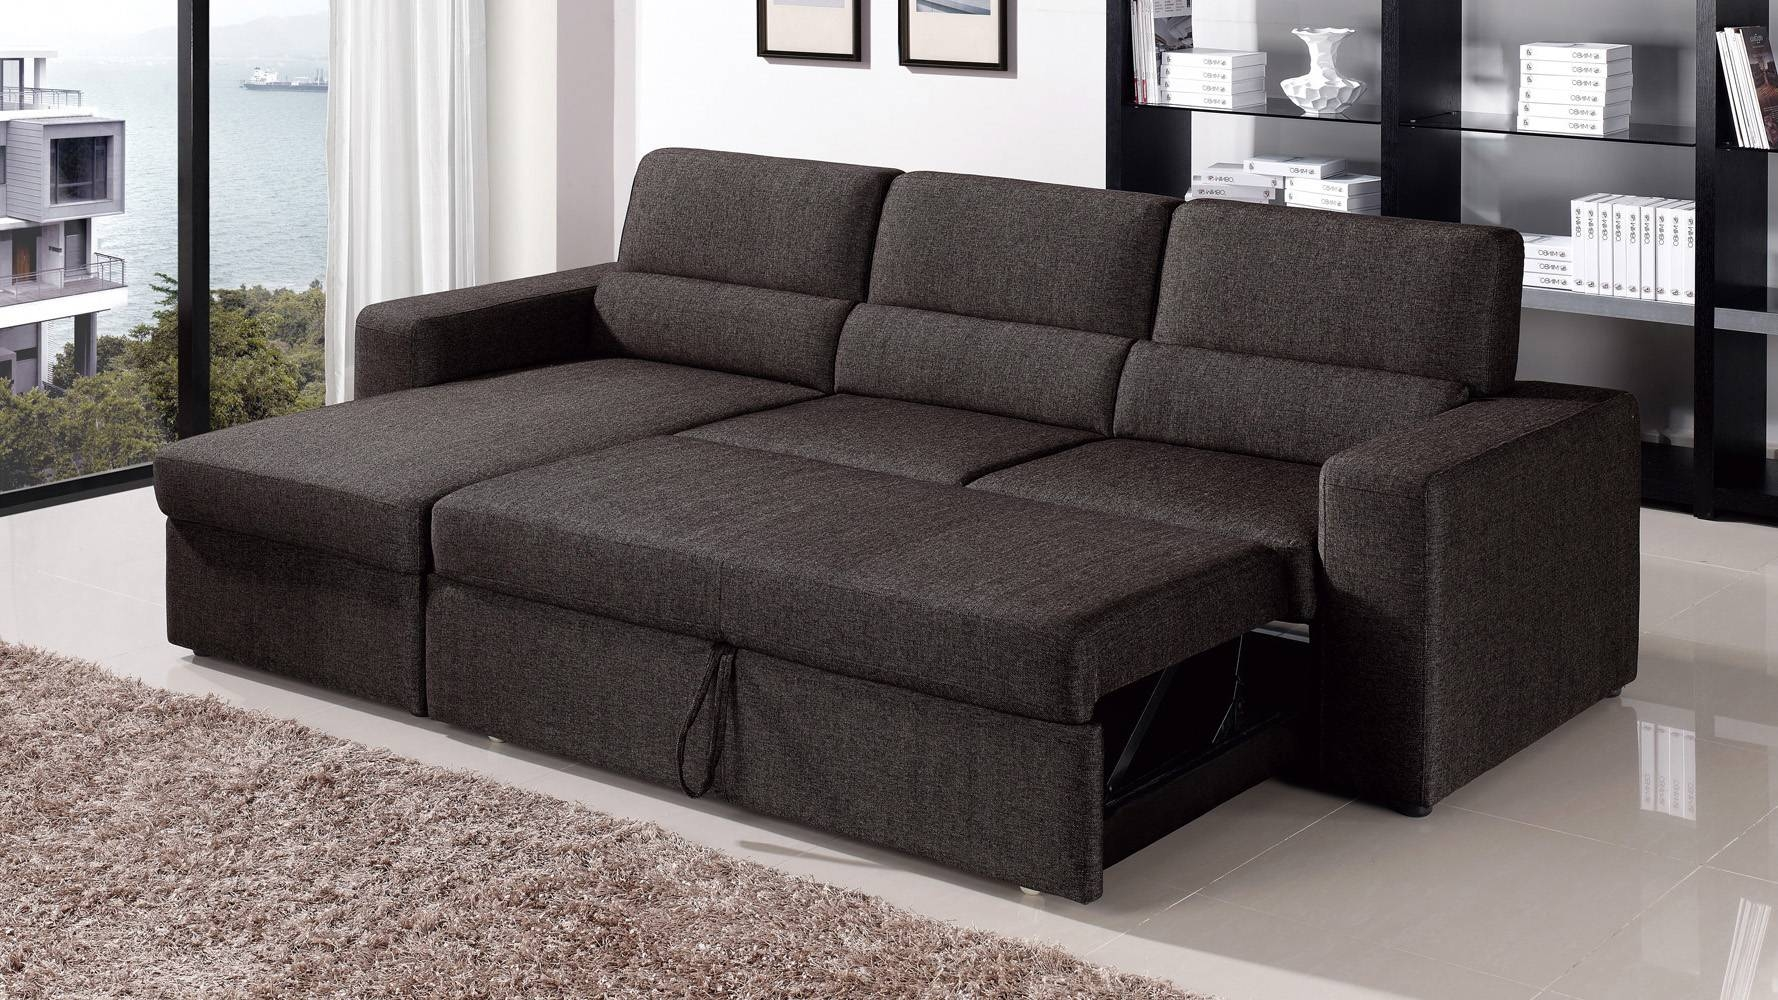 Black/brown Clubber Sleeper Sectional Sofa | Zuri Furniture For Sleeper Sectional Sofas (View 2 of 30)